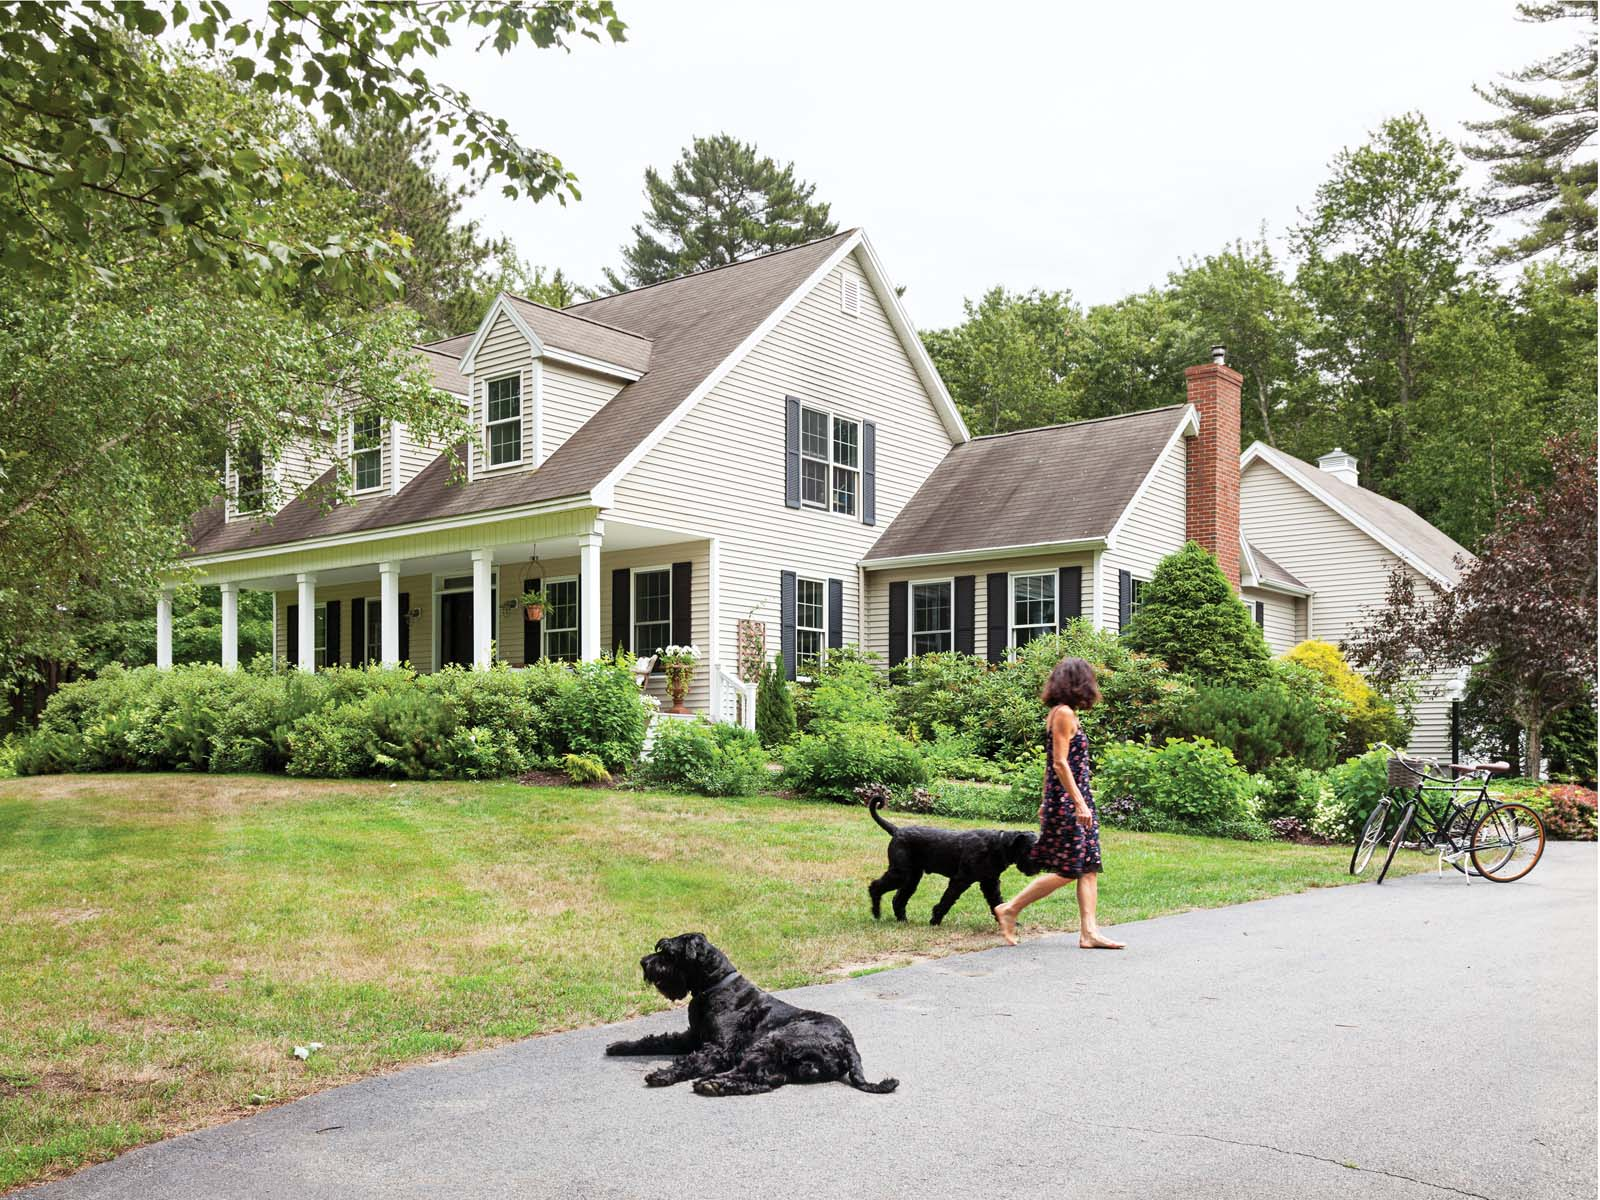 Maine Home Design Architecture Art And Good Living - Real home design